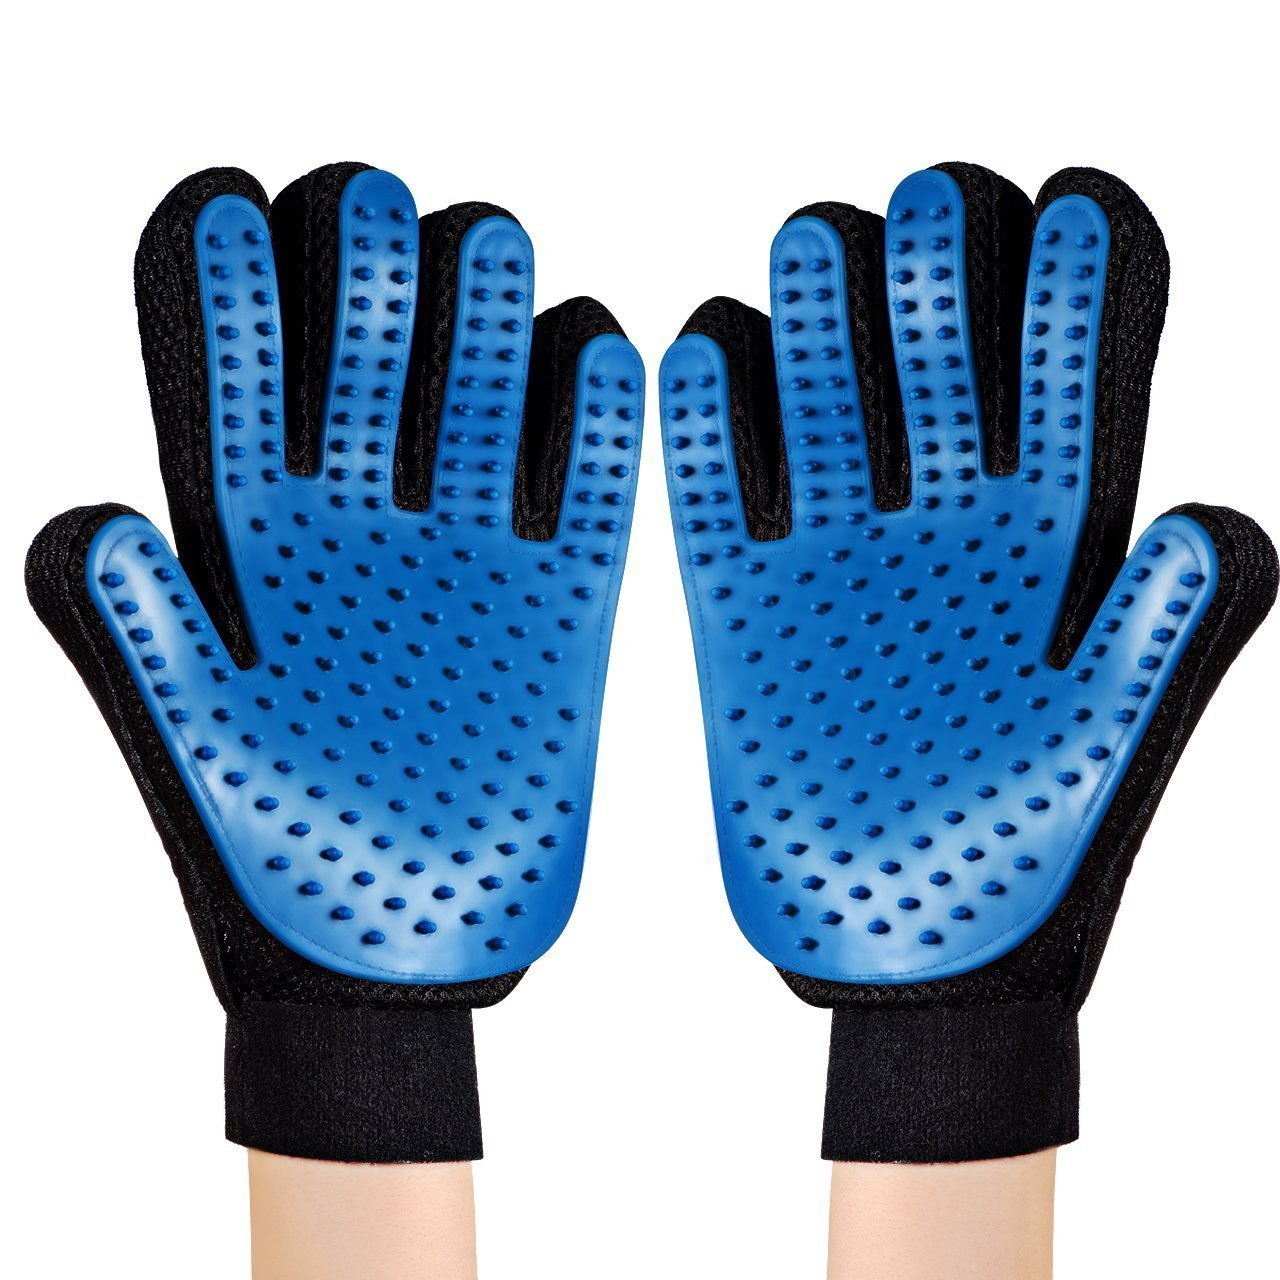 1 Pair Pet Grooming Glove, Pet Hair Remover, Deshedding Brush Supplies with Enhanced Five Finger Design, Ideal for Dogs, Cats and Horses with Long and Short Fur